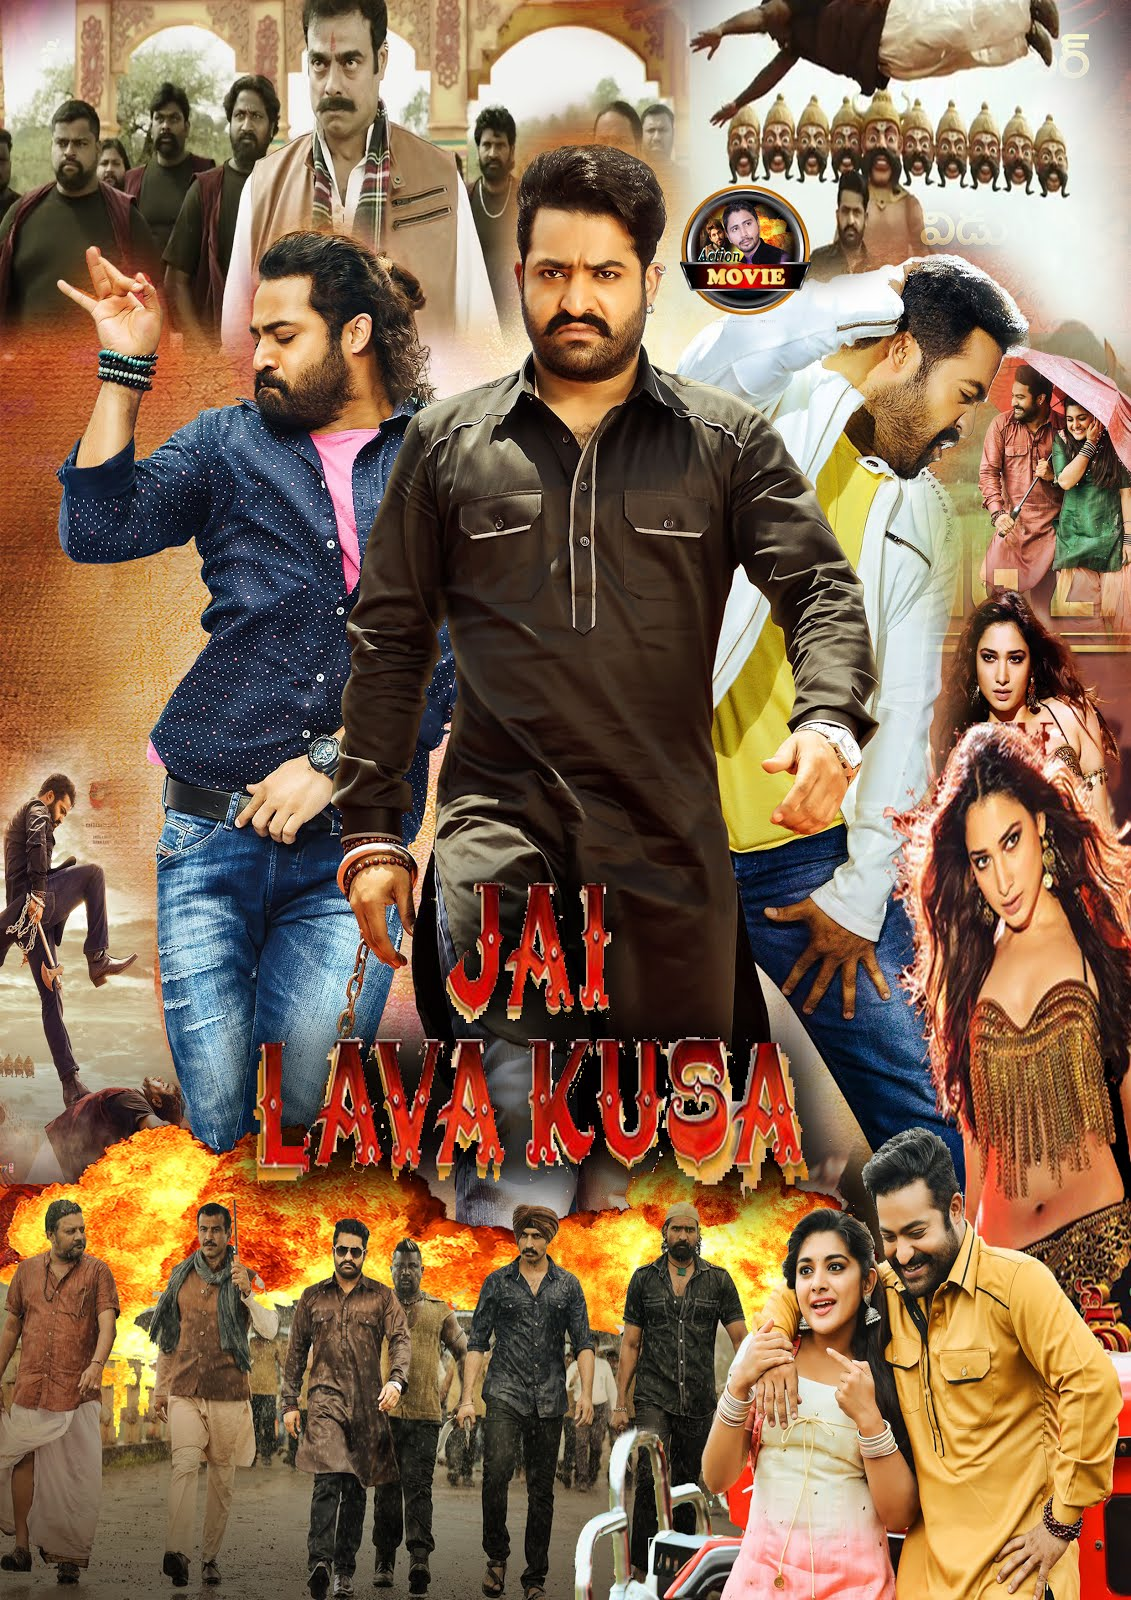 Jai Lava Kusa 2017 Hindi Dual Audio 650MB HDRip 720p HEVC x265 UNCUT